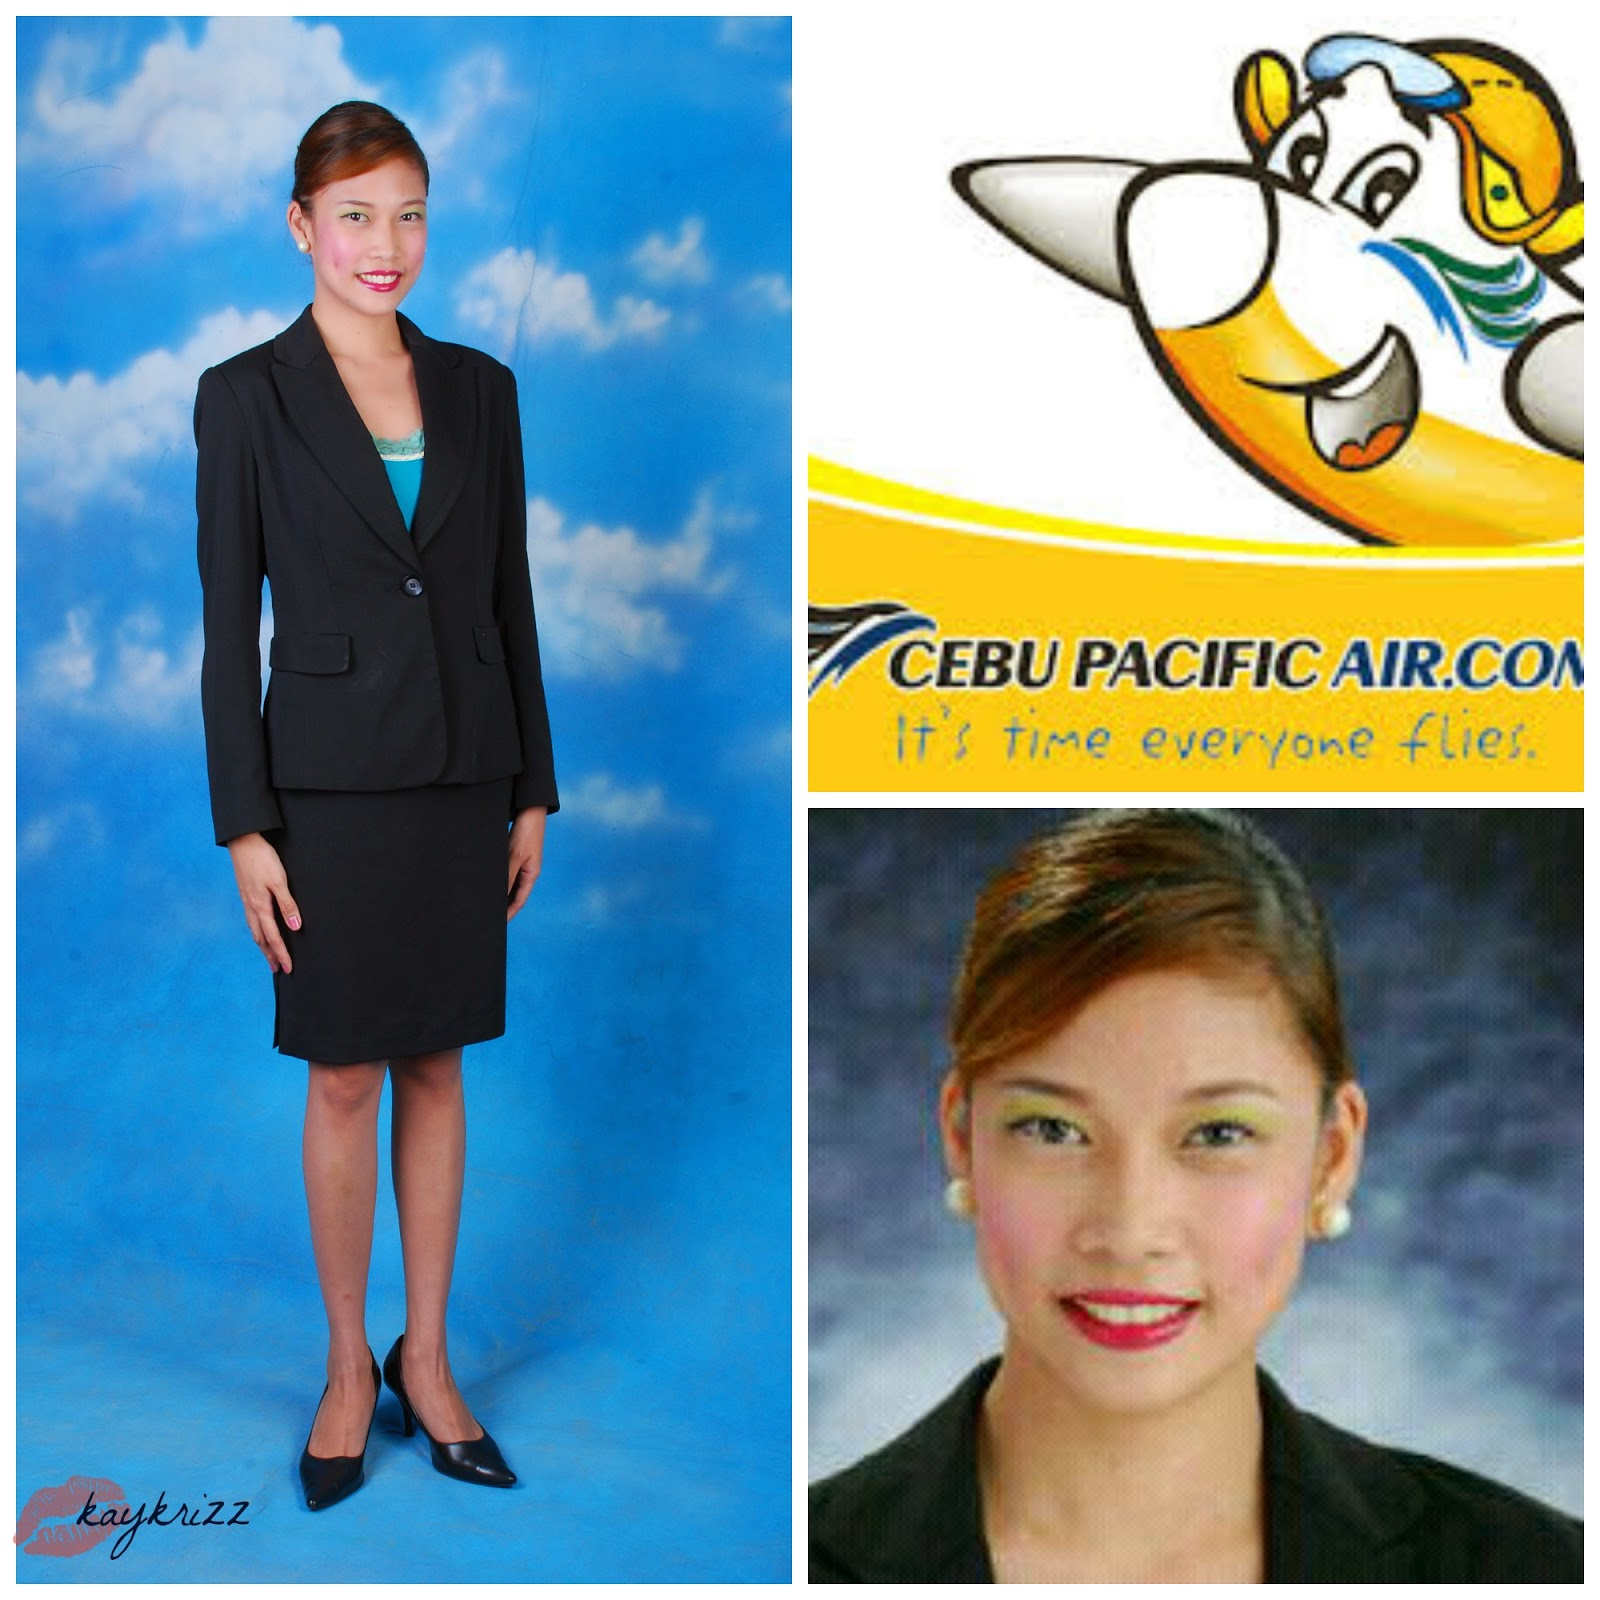 tips on answering flight attendant interview questions miss cebu pacific air recruitment experience one day hiring process